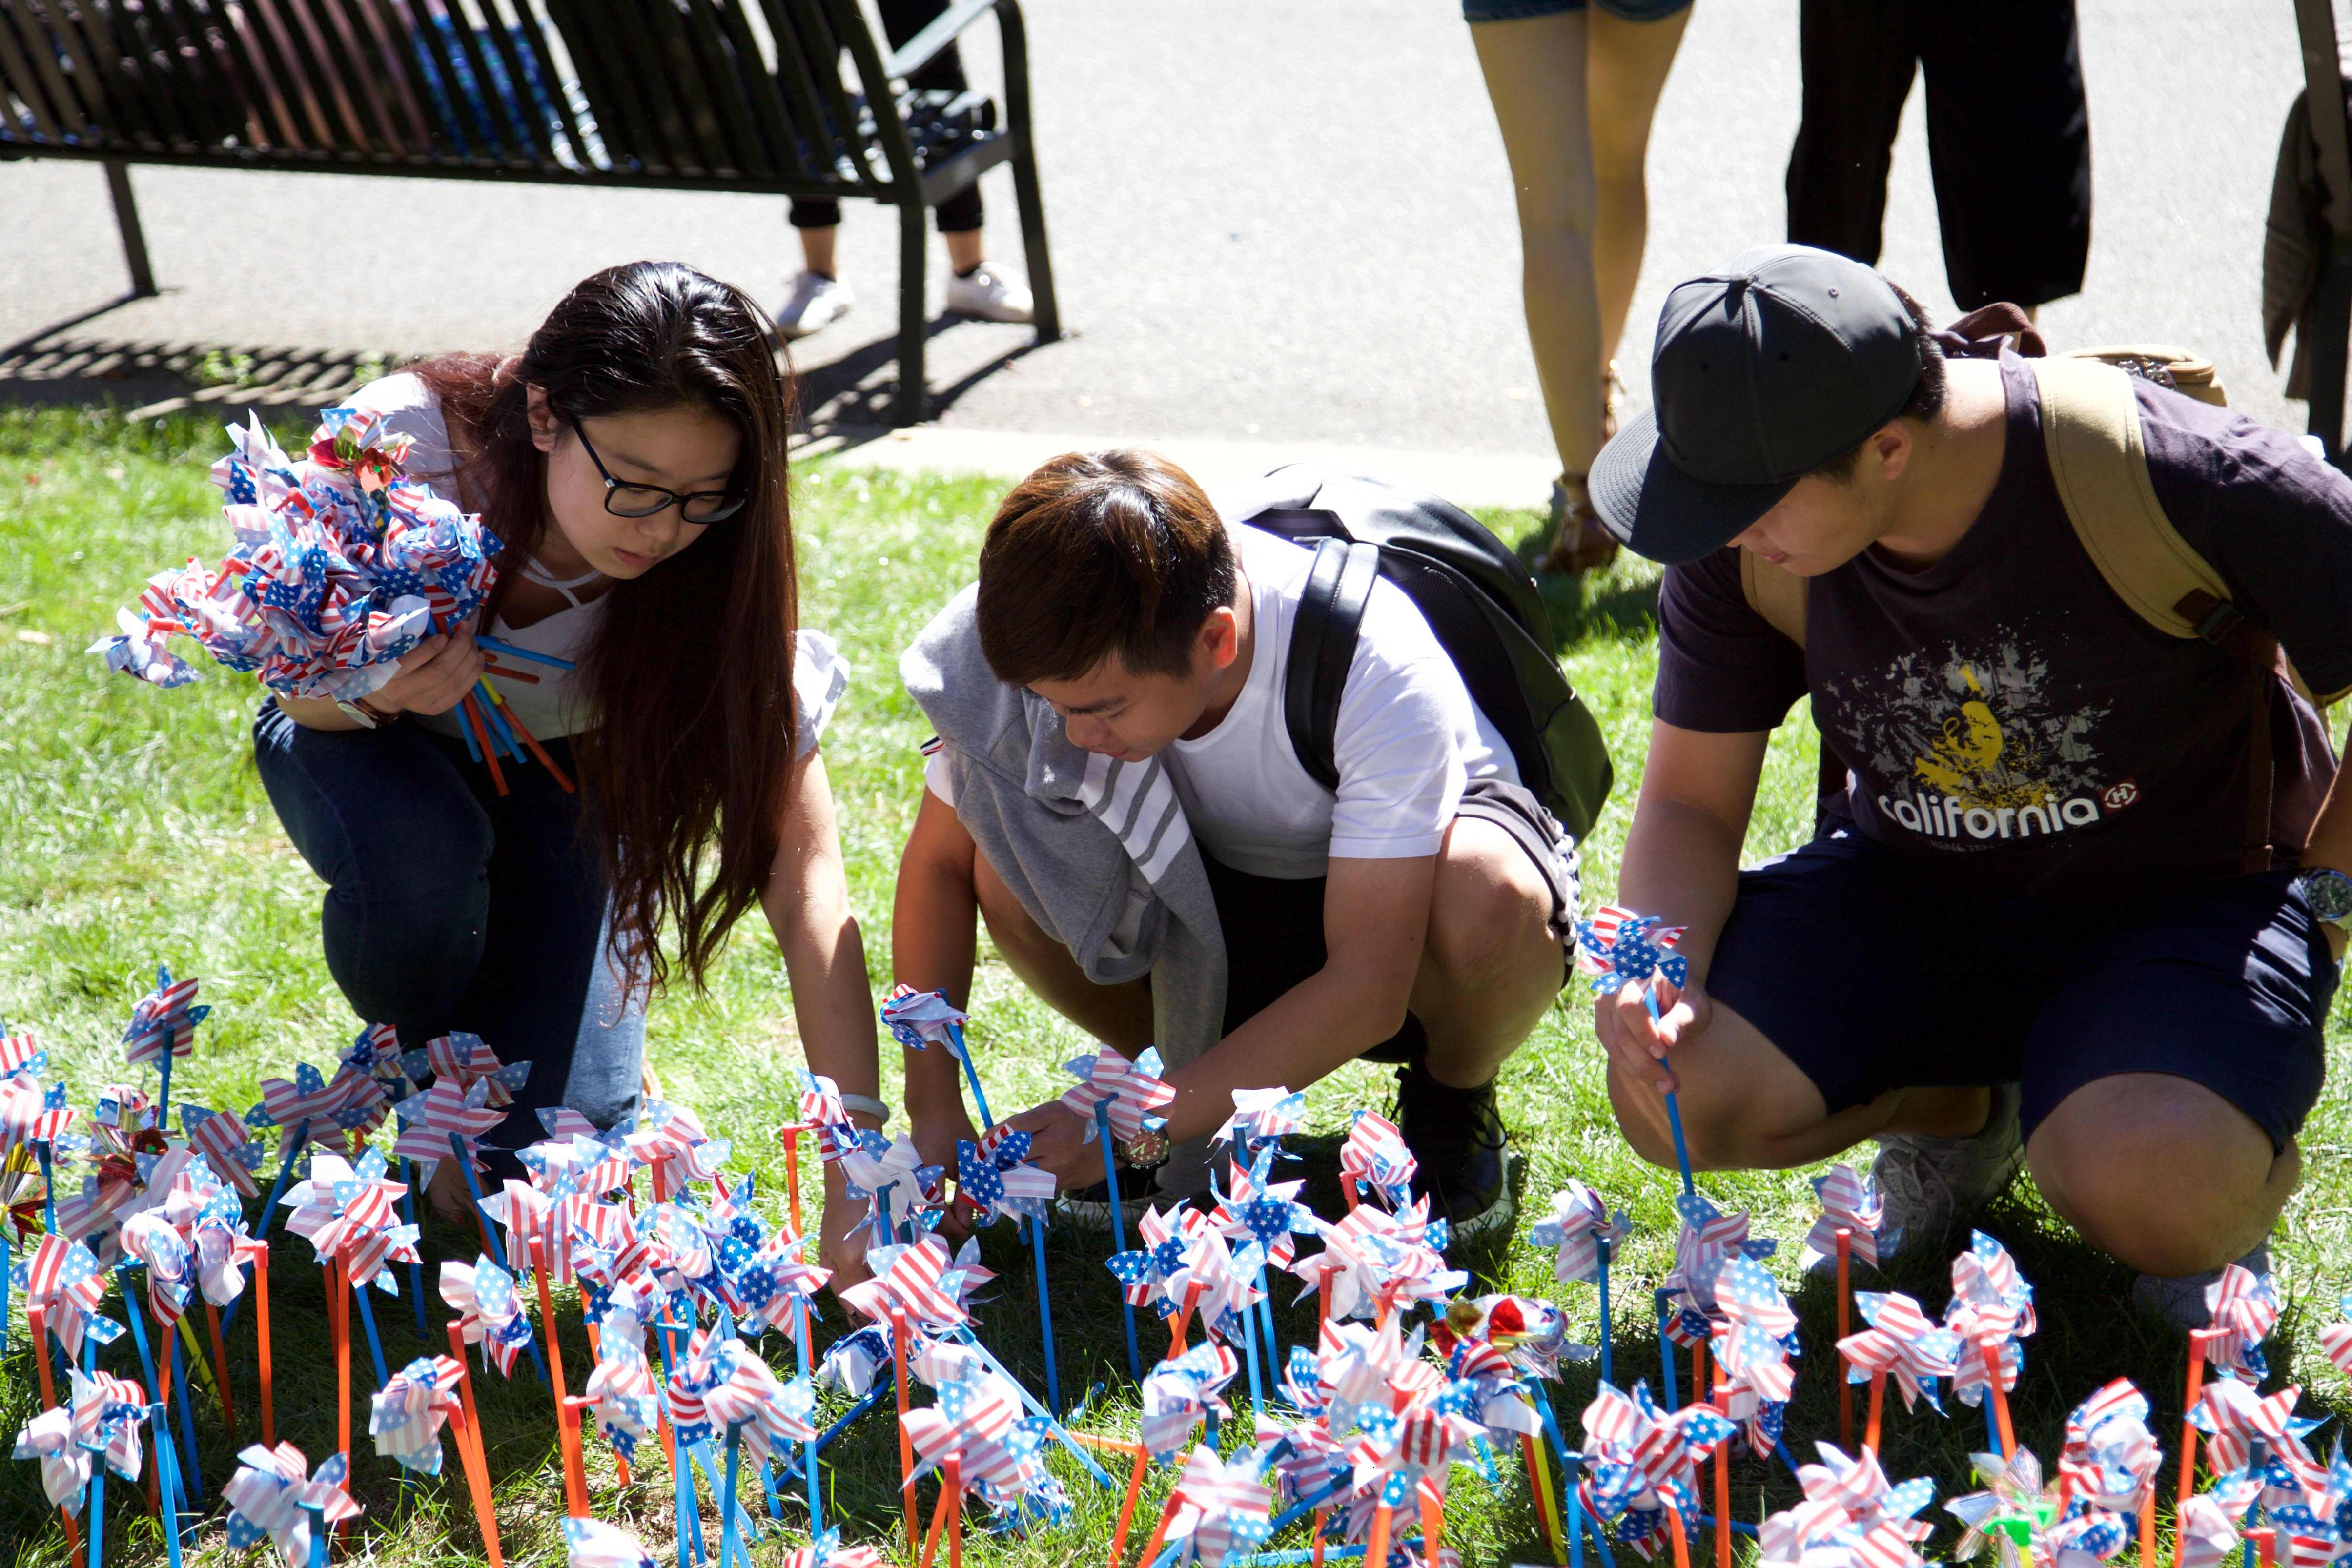 Students place commemorative pinwheels into the grass to remember 9/11. ANGELICA CARPENTER/THE STATESMAN